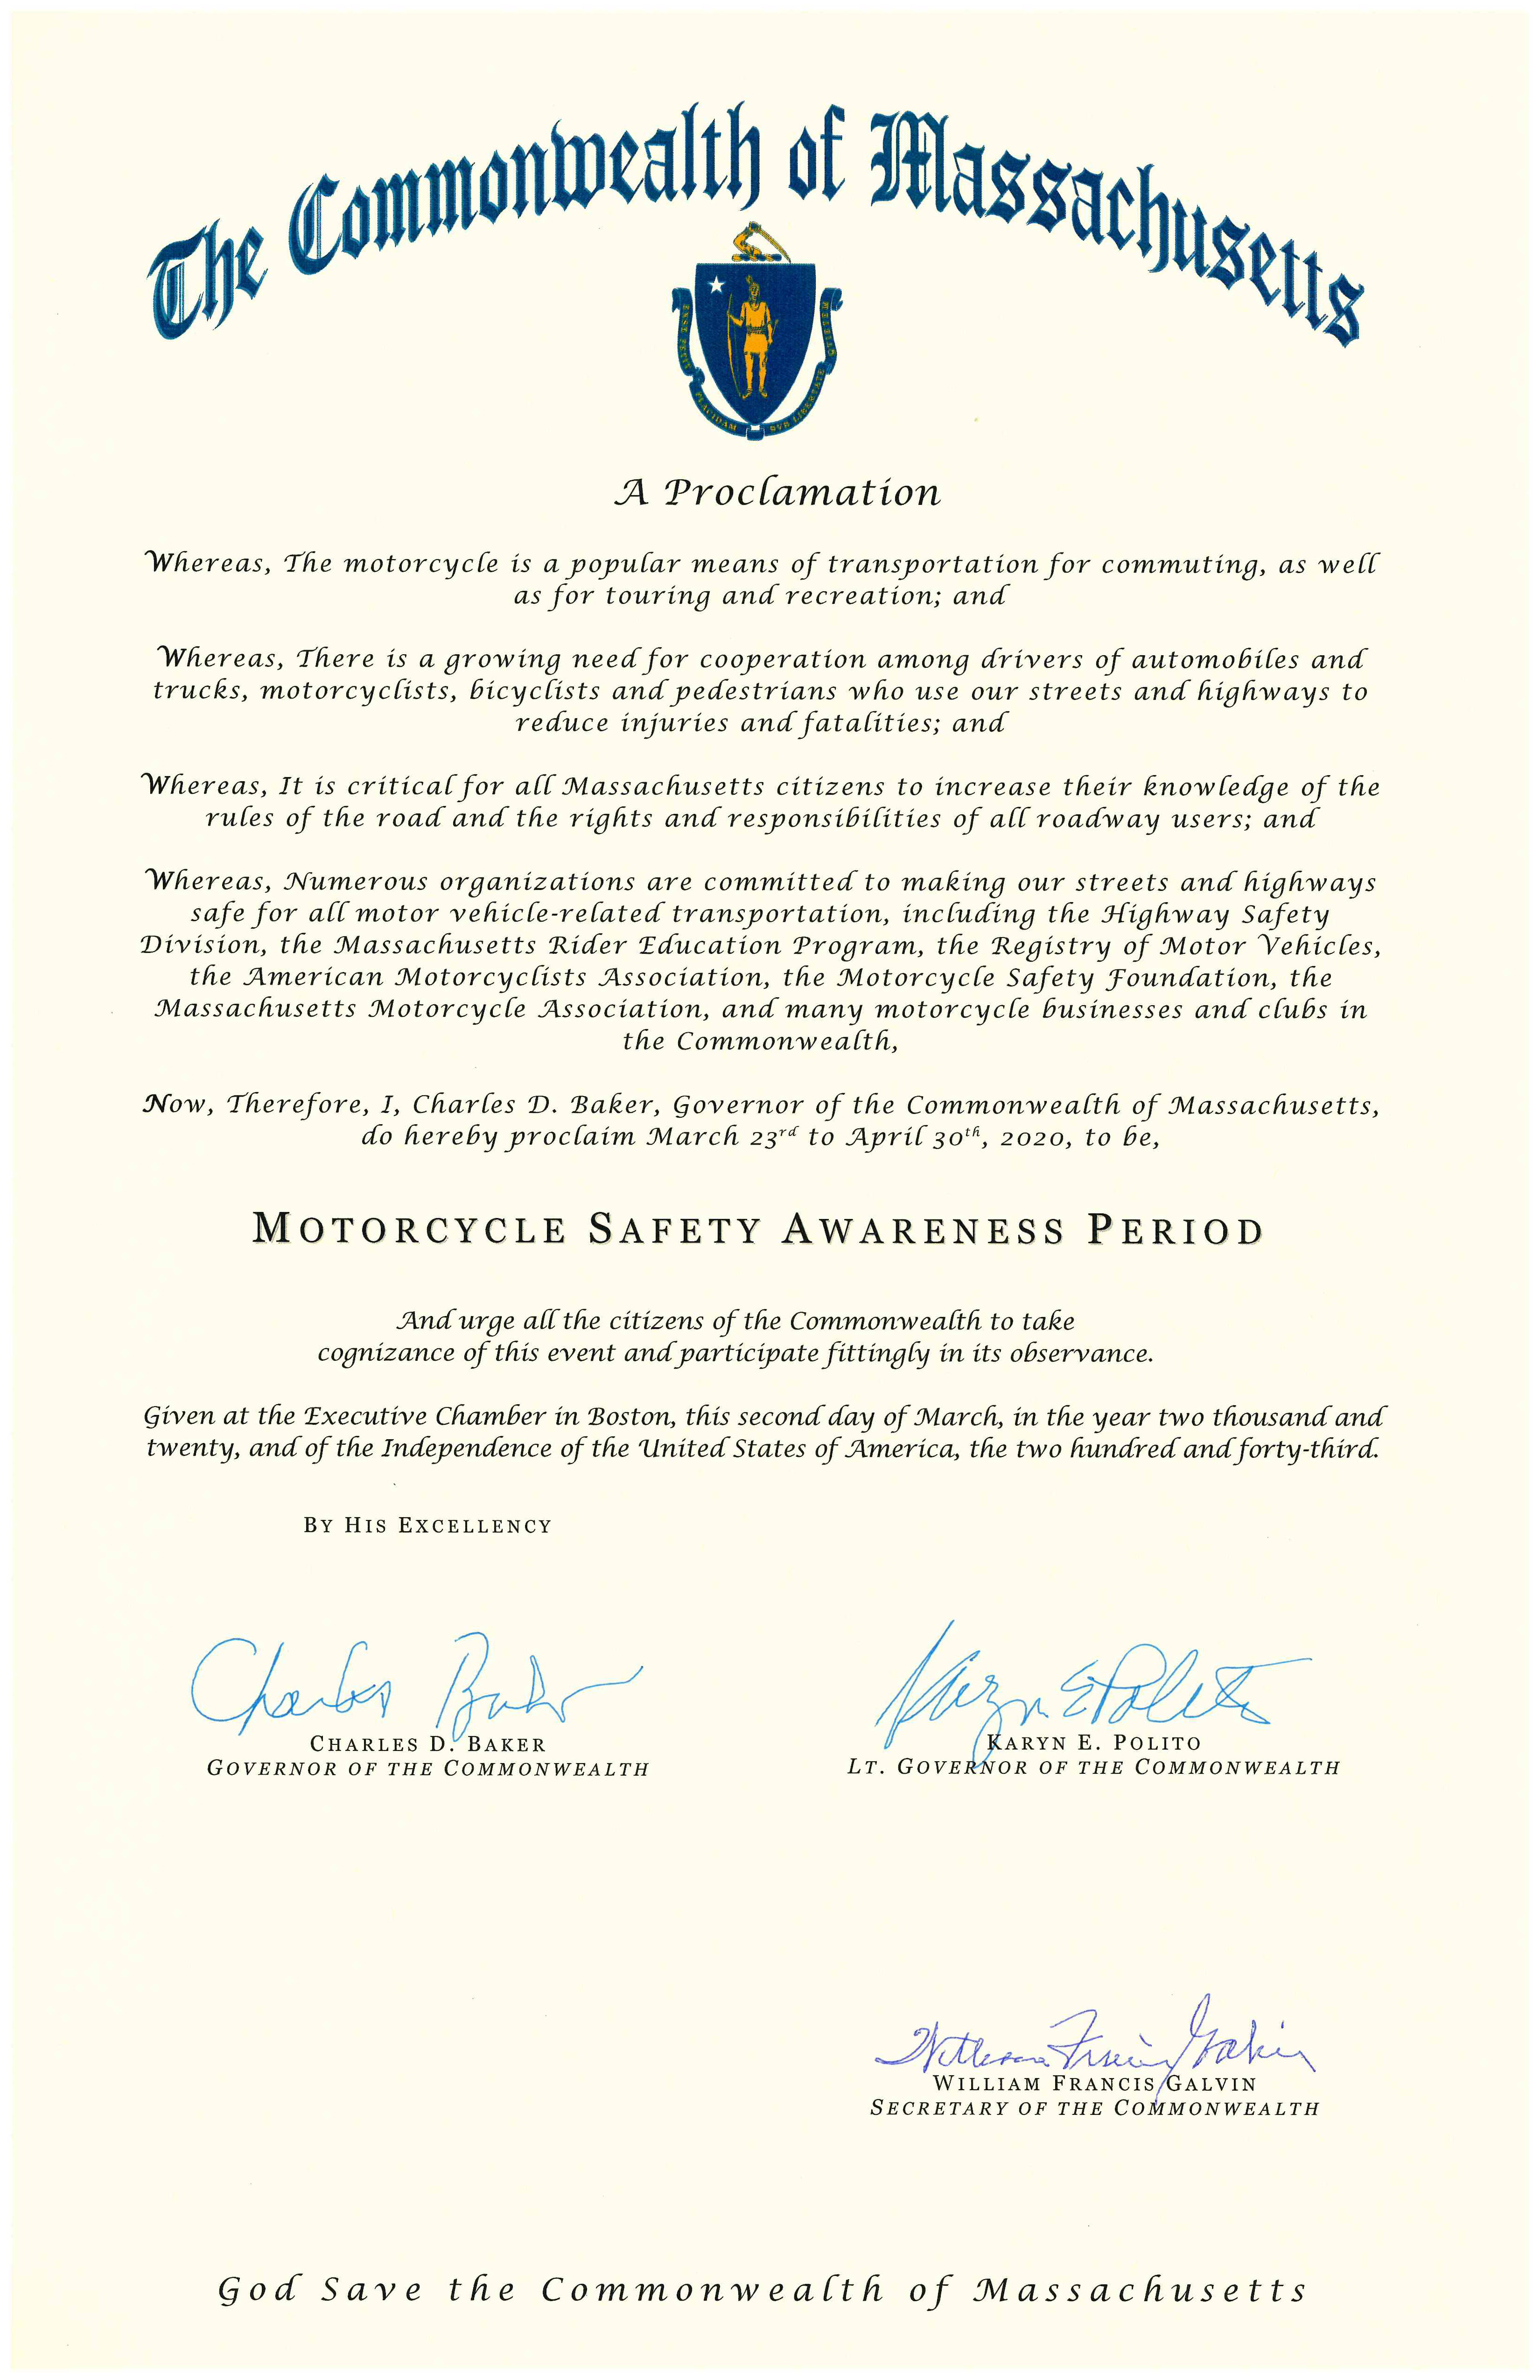 2020 Motorcycle Safety Awareness Proclamation